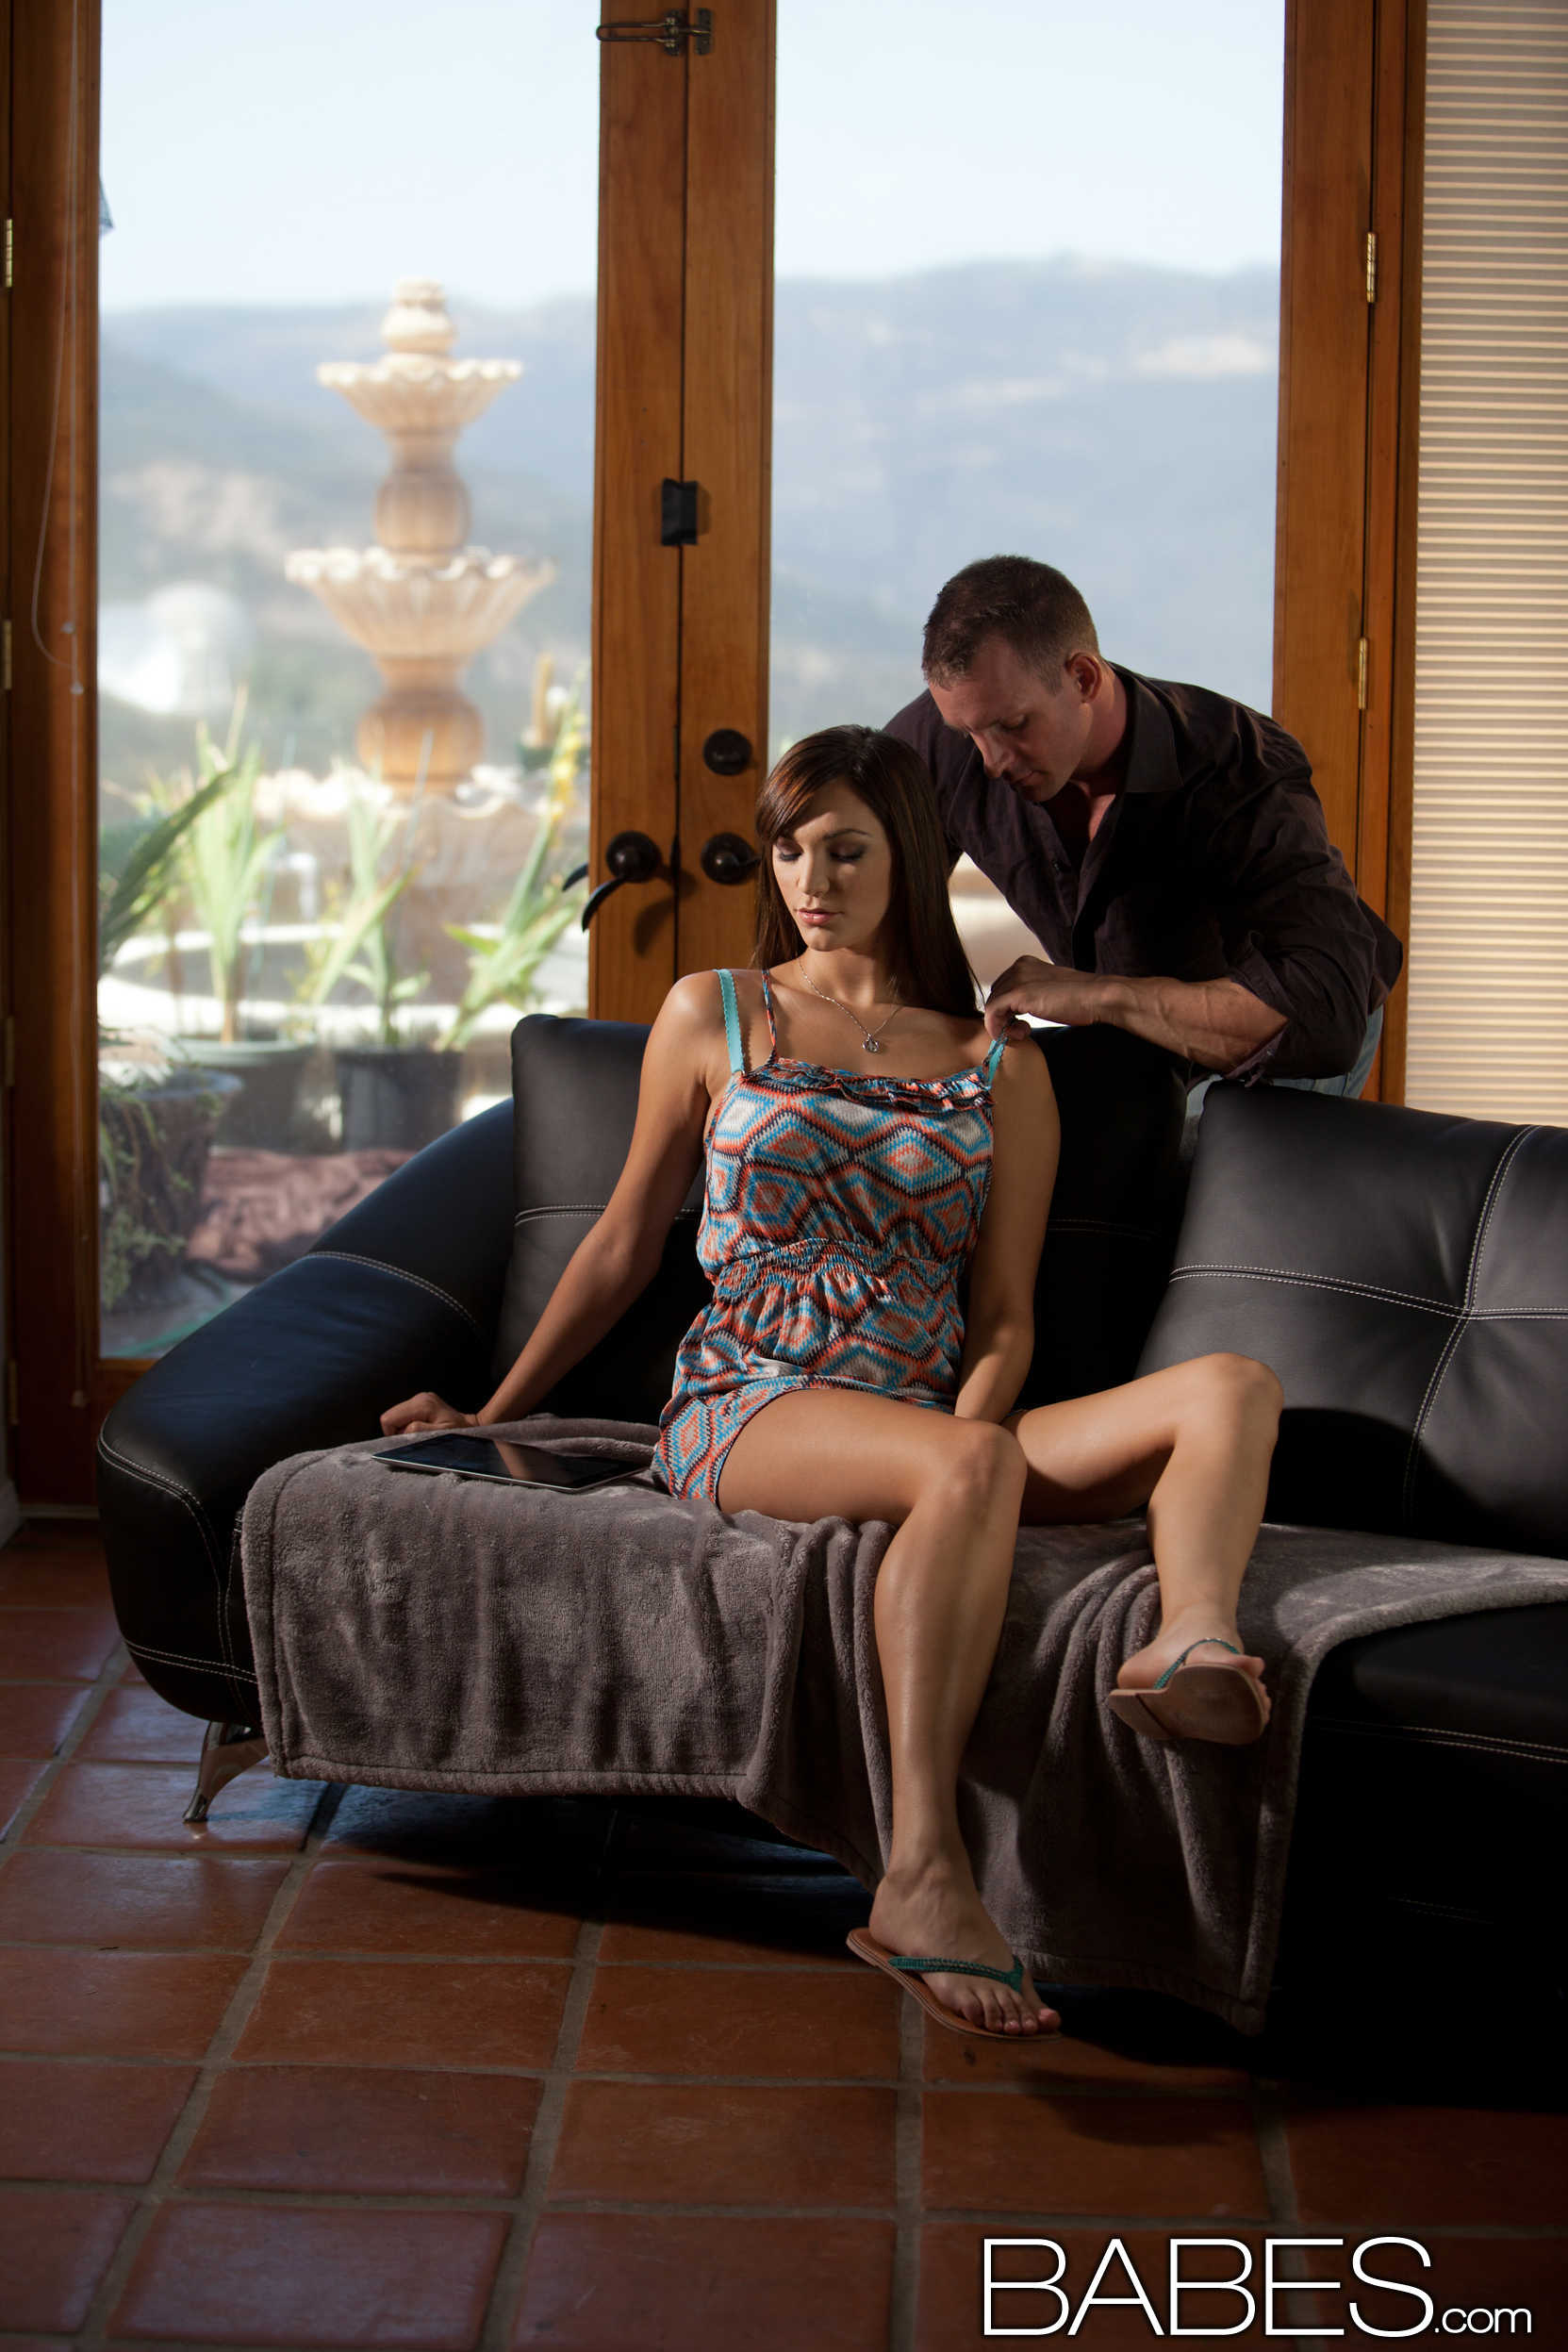 Babes 'Effervescent Touch' starring Holly Michaels (Photo 6)